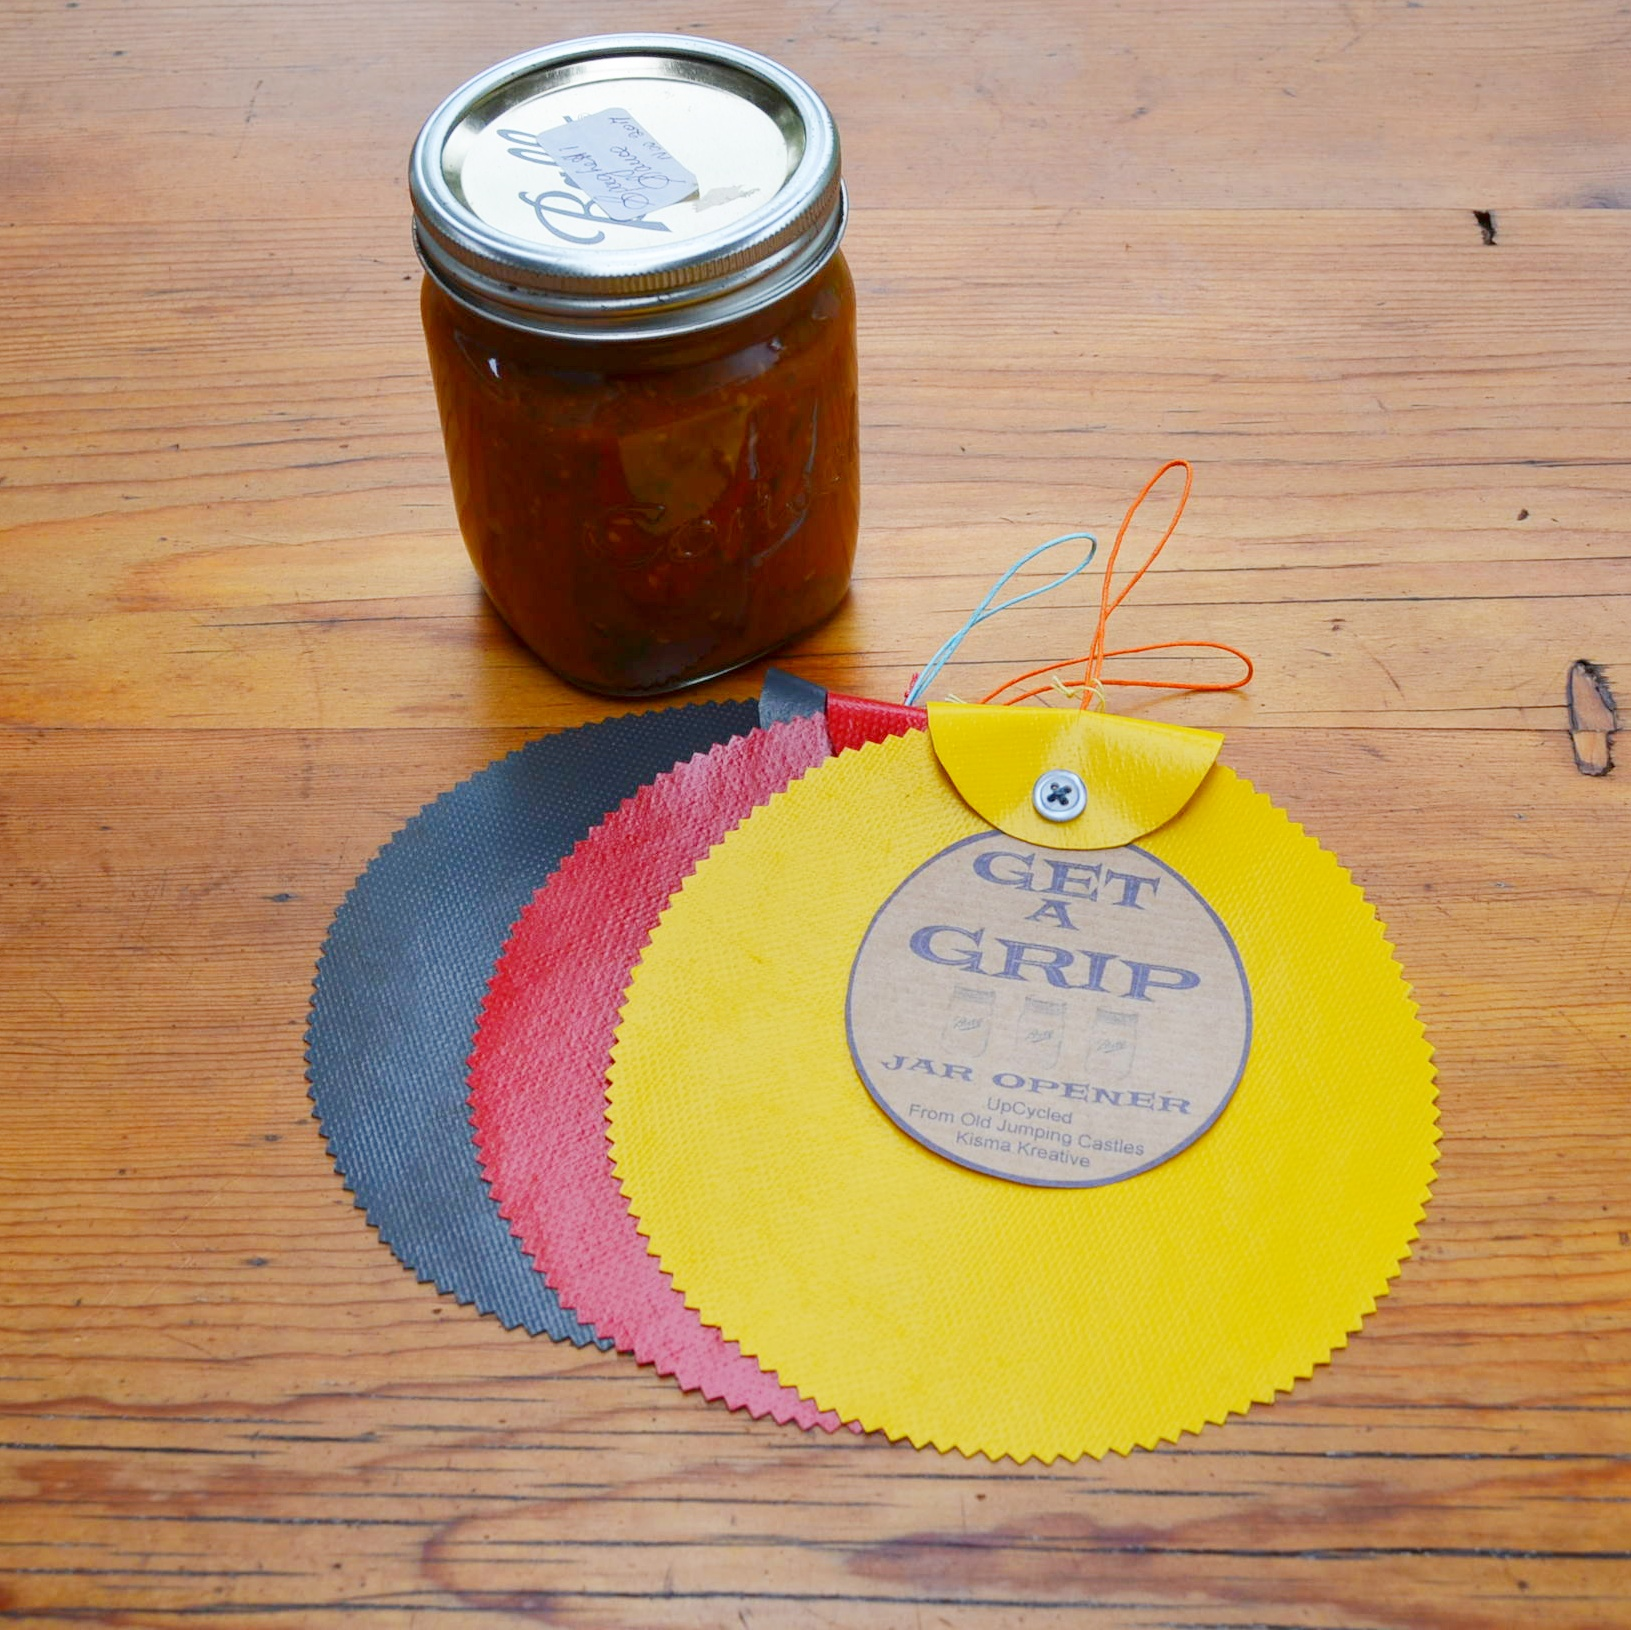 Get a grip on that jar lid and open jars easily with this nifty little circle. Cut from old Jumping Castles. Available in grey, orange, red, blue, yellowandgreen.